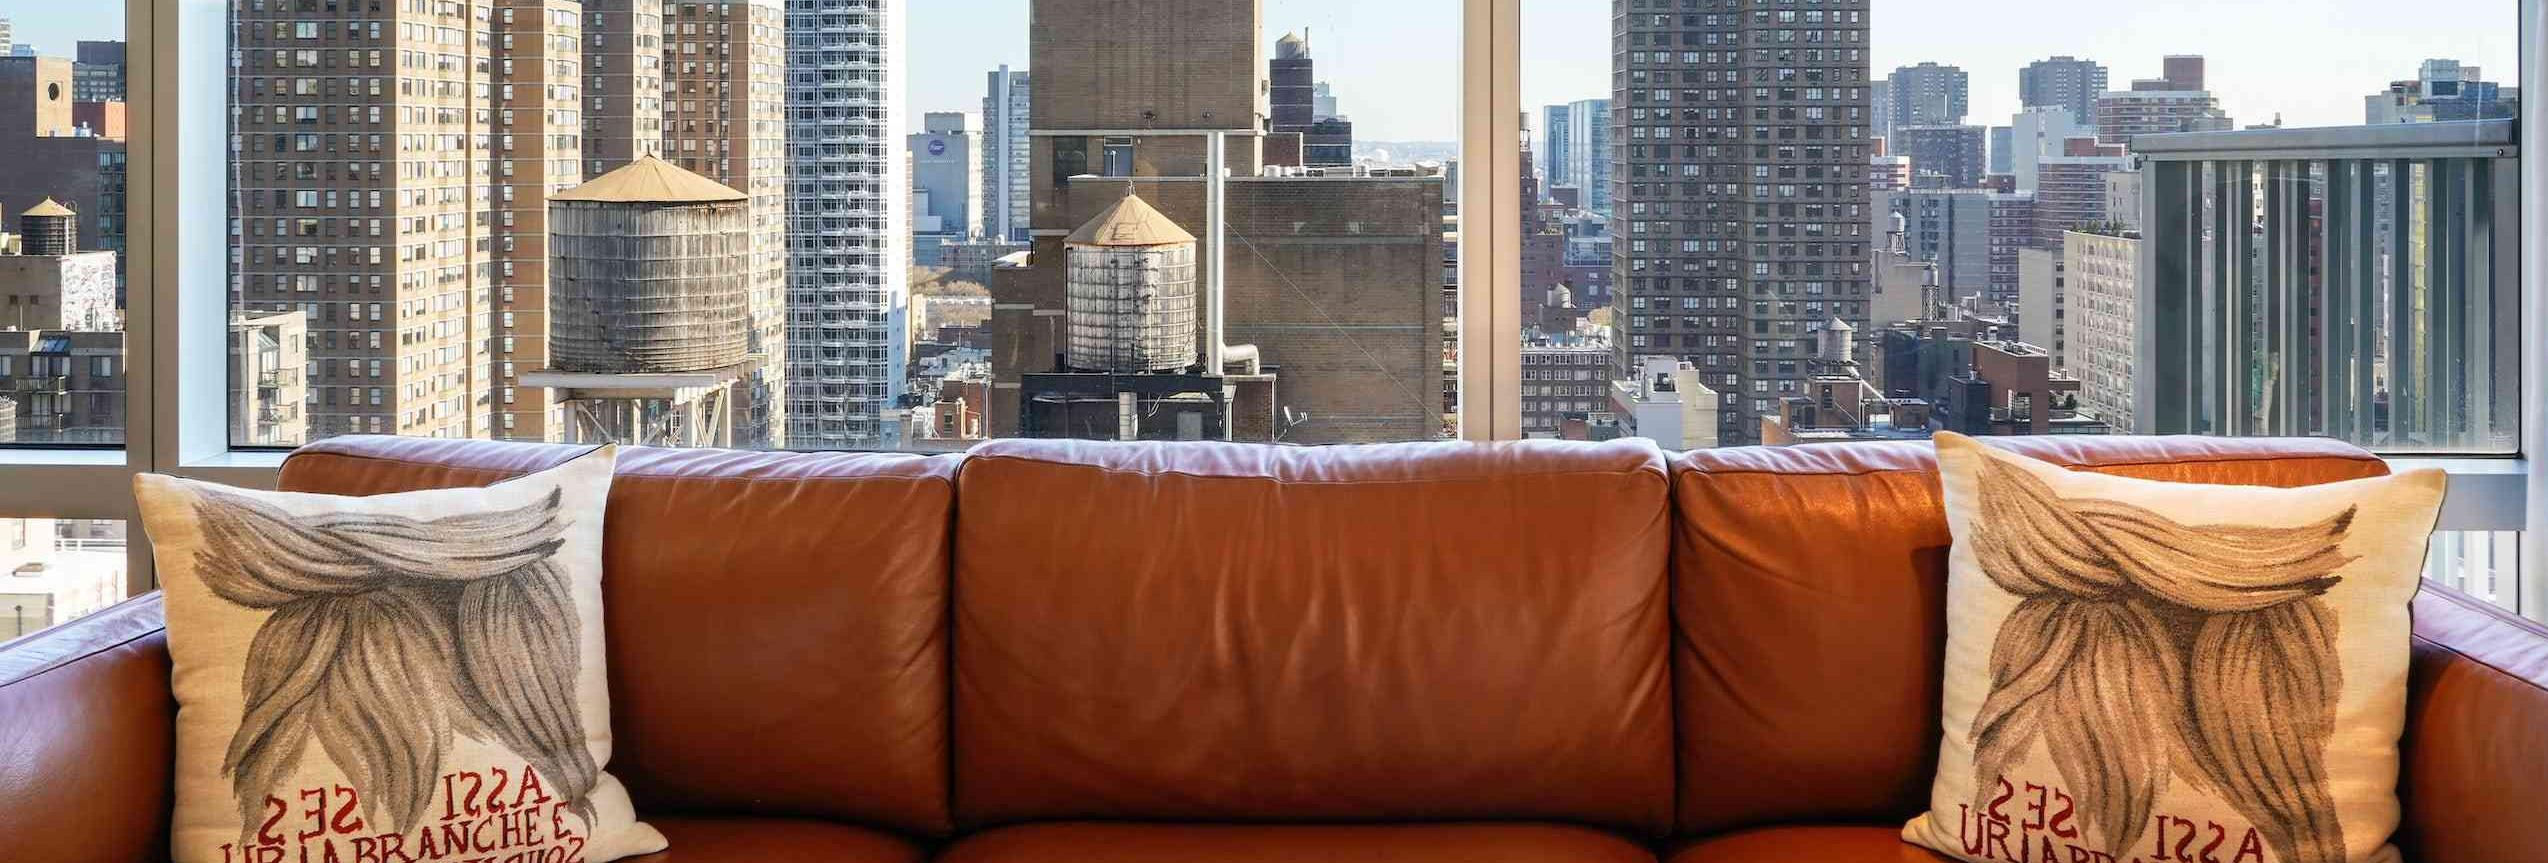 brown couch with city views